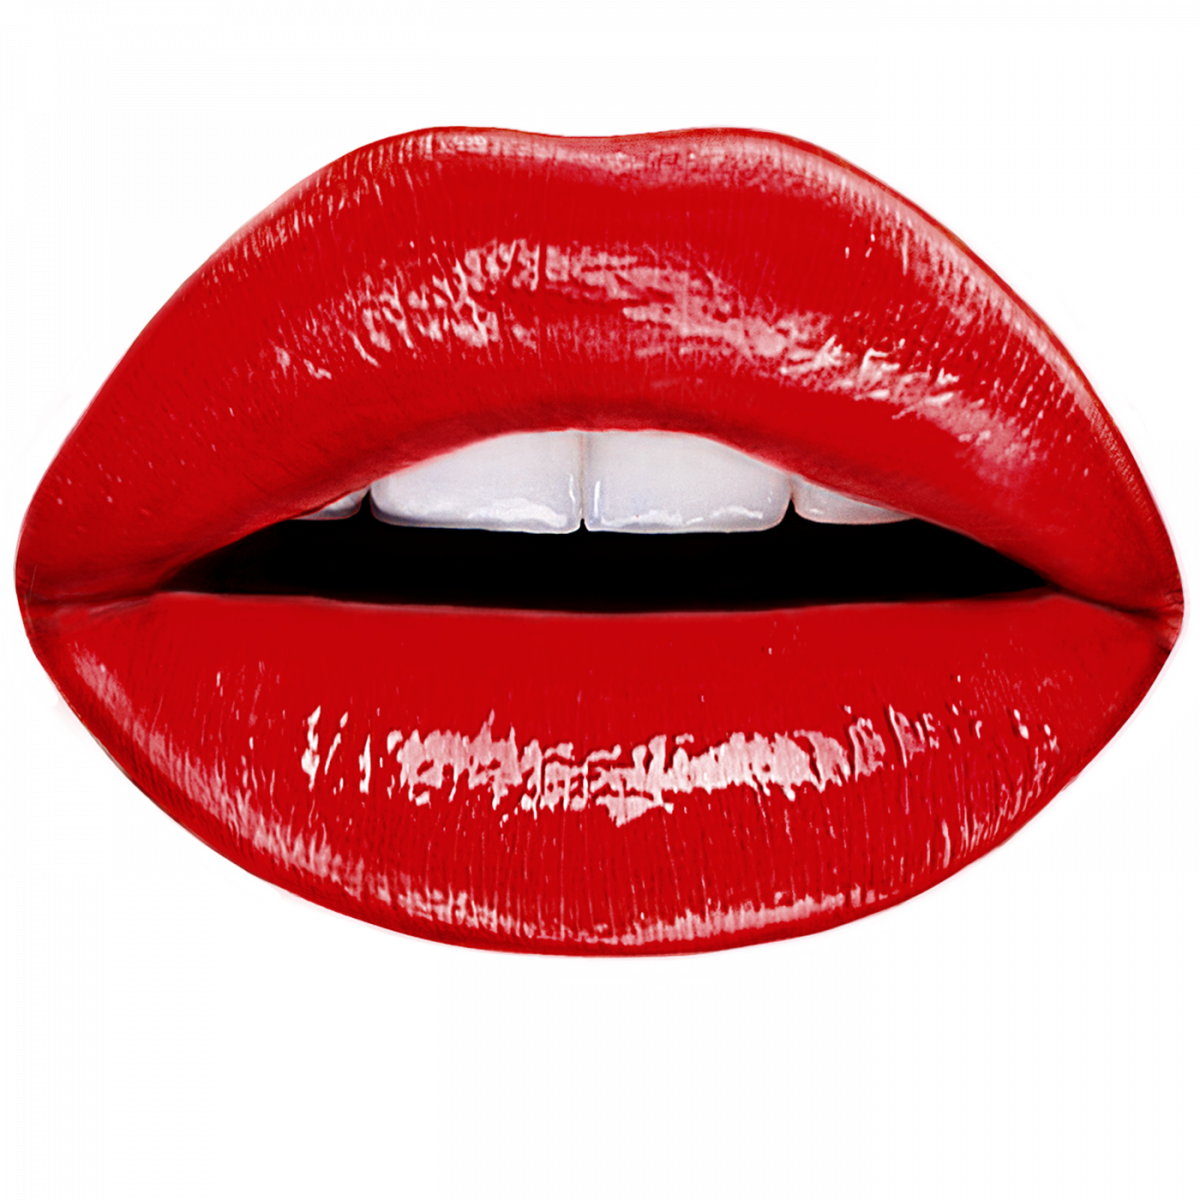 buy Glamrock KissMe lippie